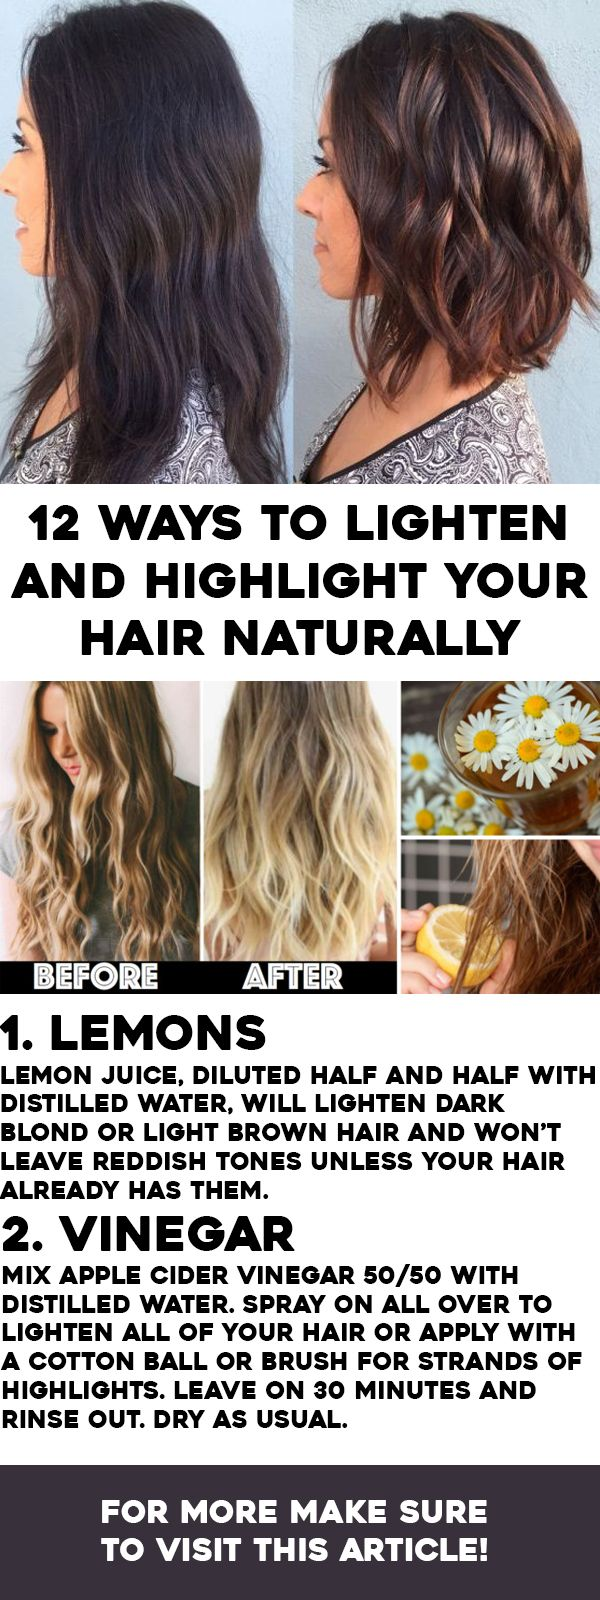 How To Lighten Hair Naturally And Add Highlights 1 Lemons Lemon Juice Diluted Half And Half W How To Lighten Hair Lighten Hair Naturally Natural Hair Styles